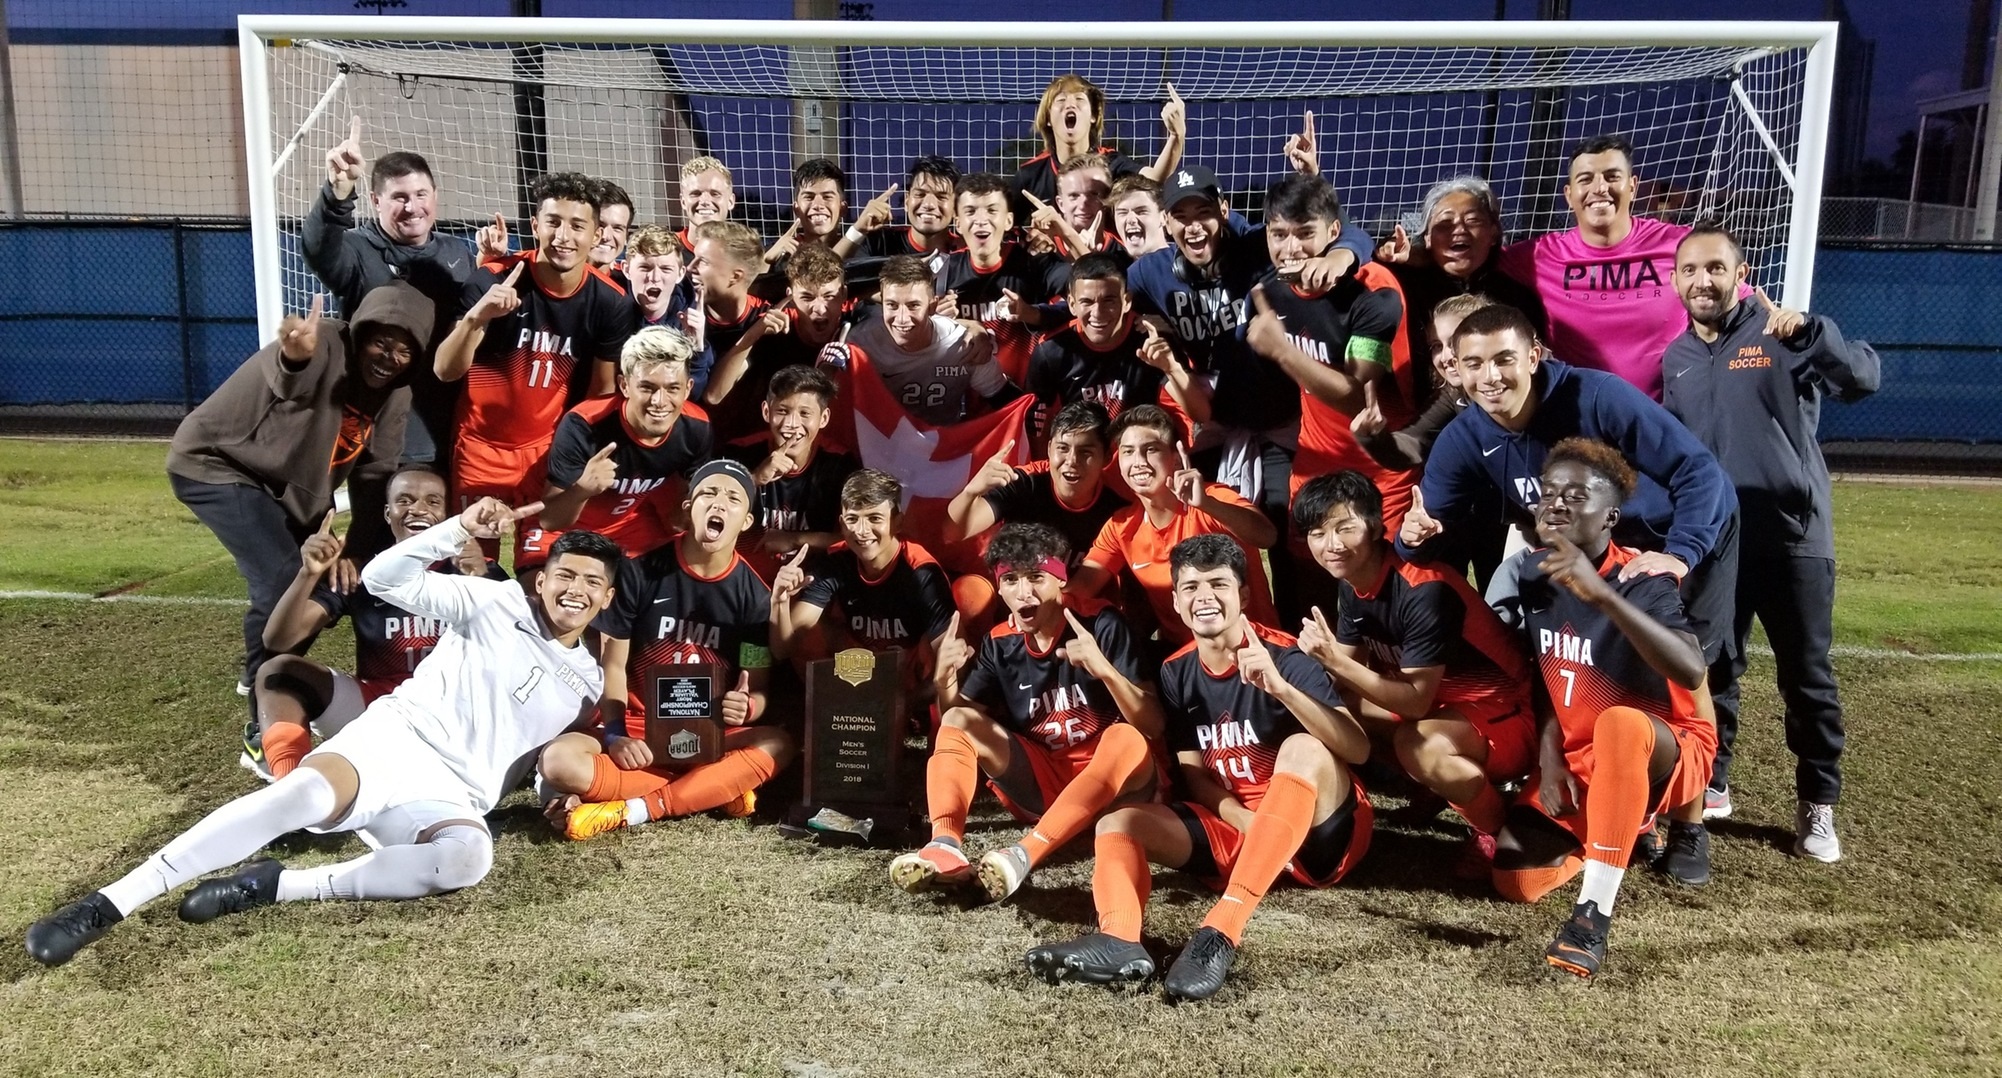 Pima's Men's Soccer Team Wins Natty